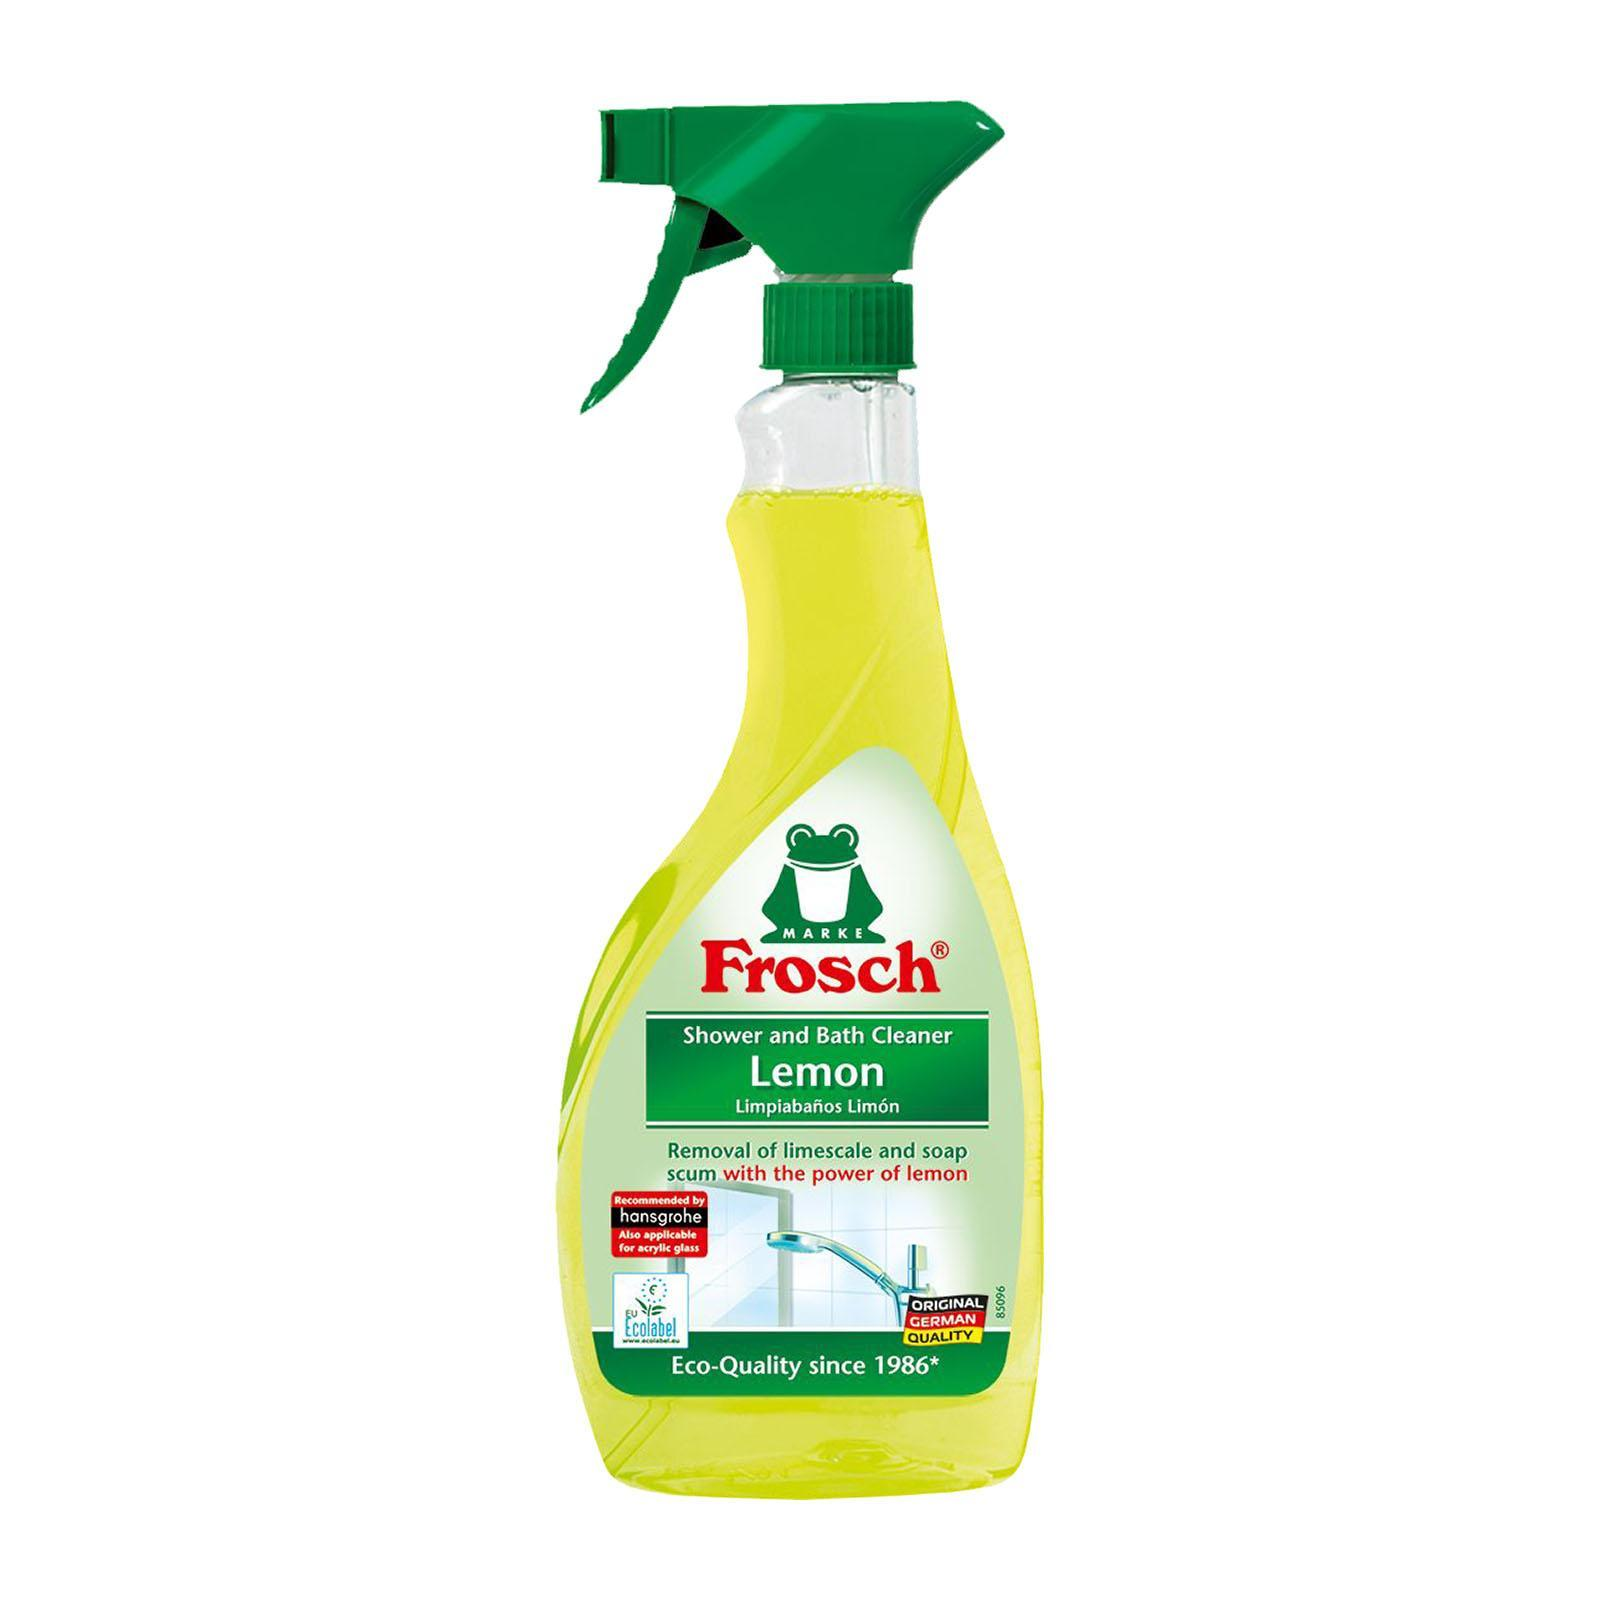 Frosch Lemon Shower and bath Trigger 500Ml